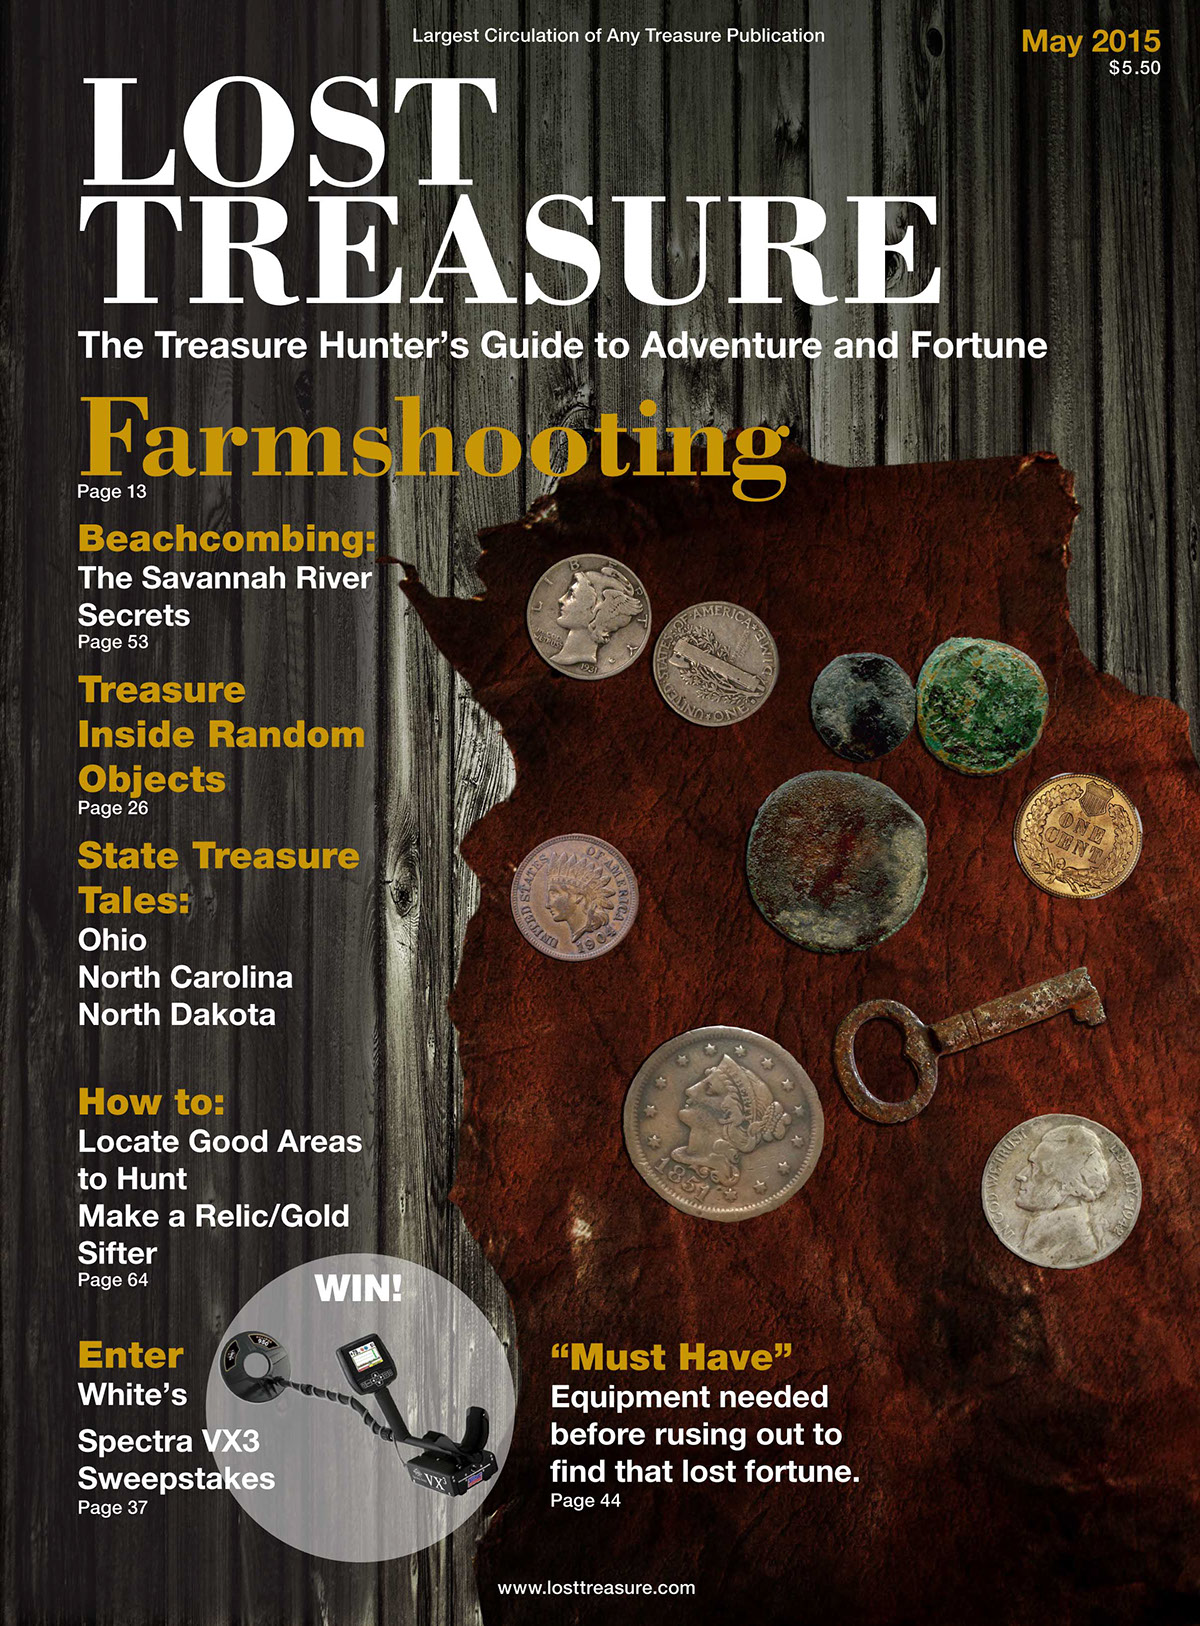 Lost Treasure - Publication Makeover on Behance